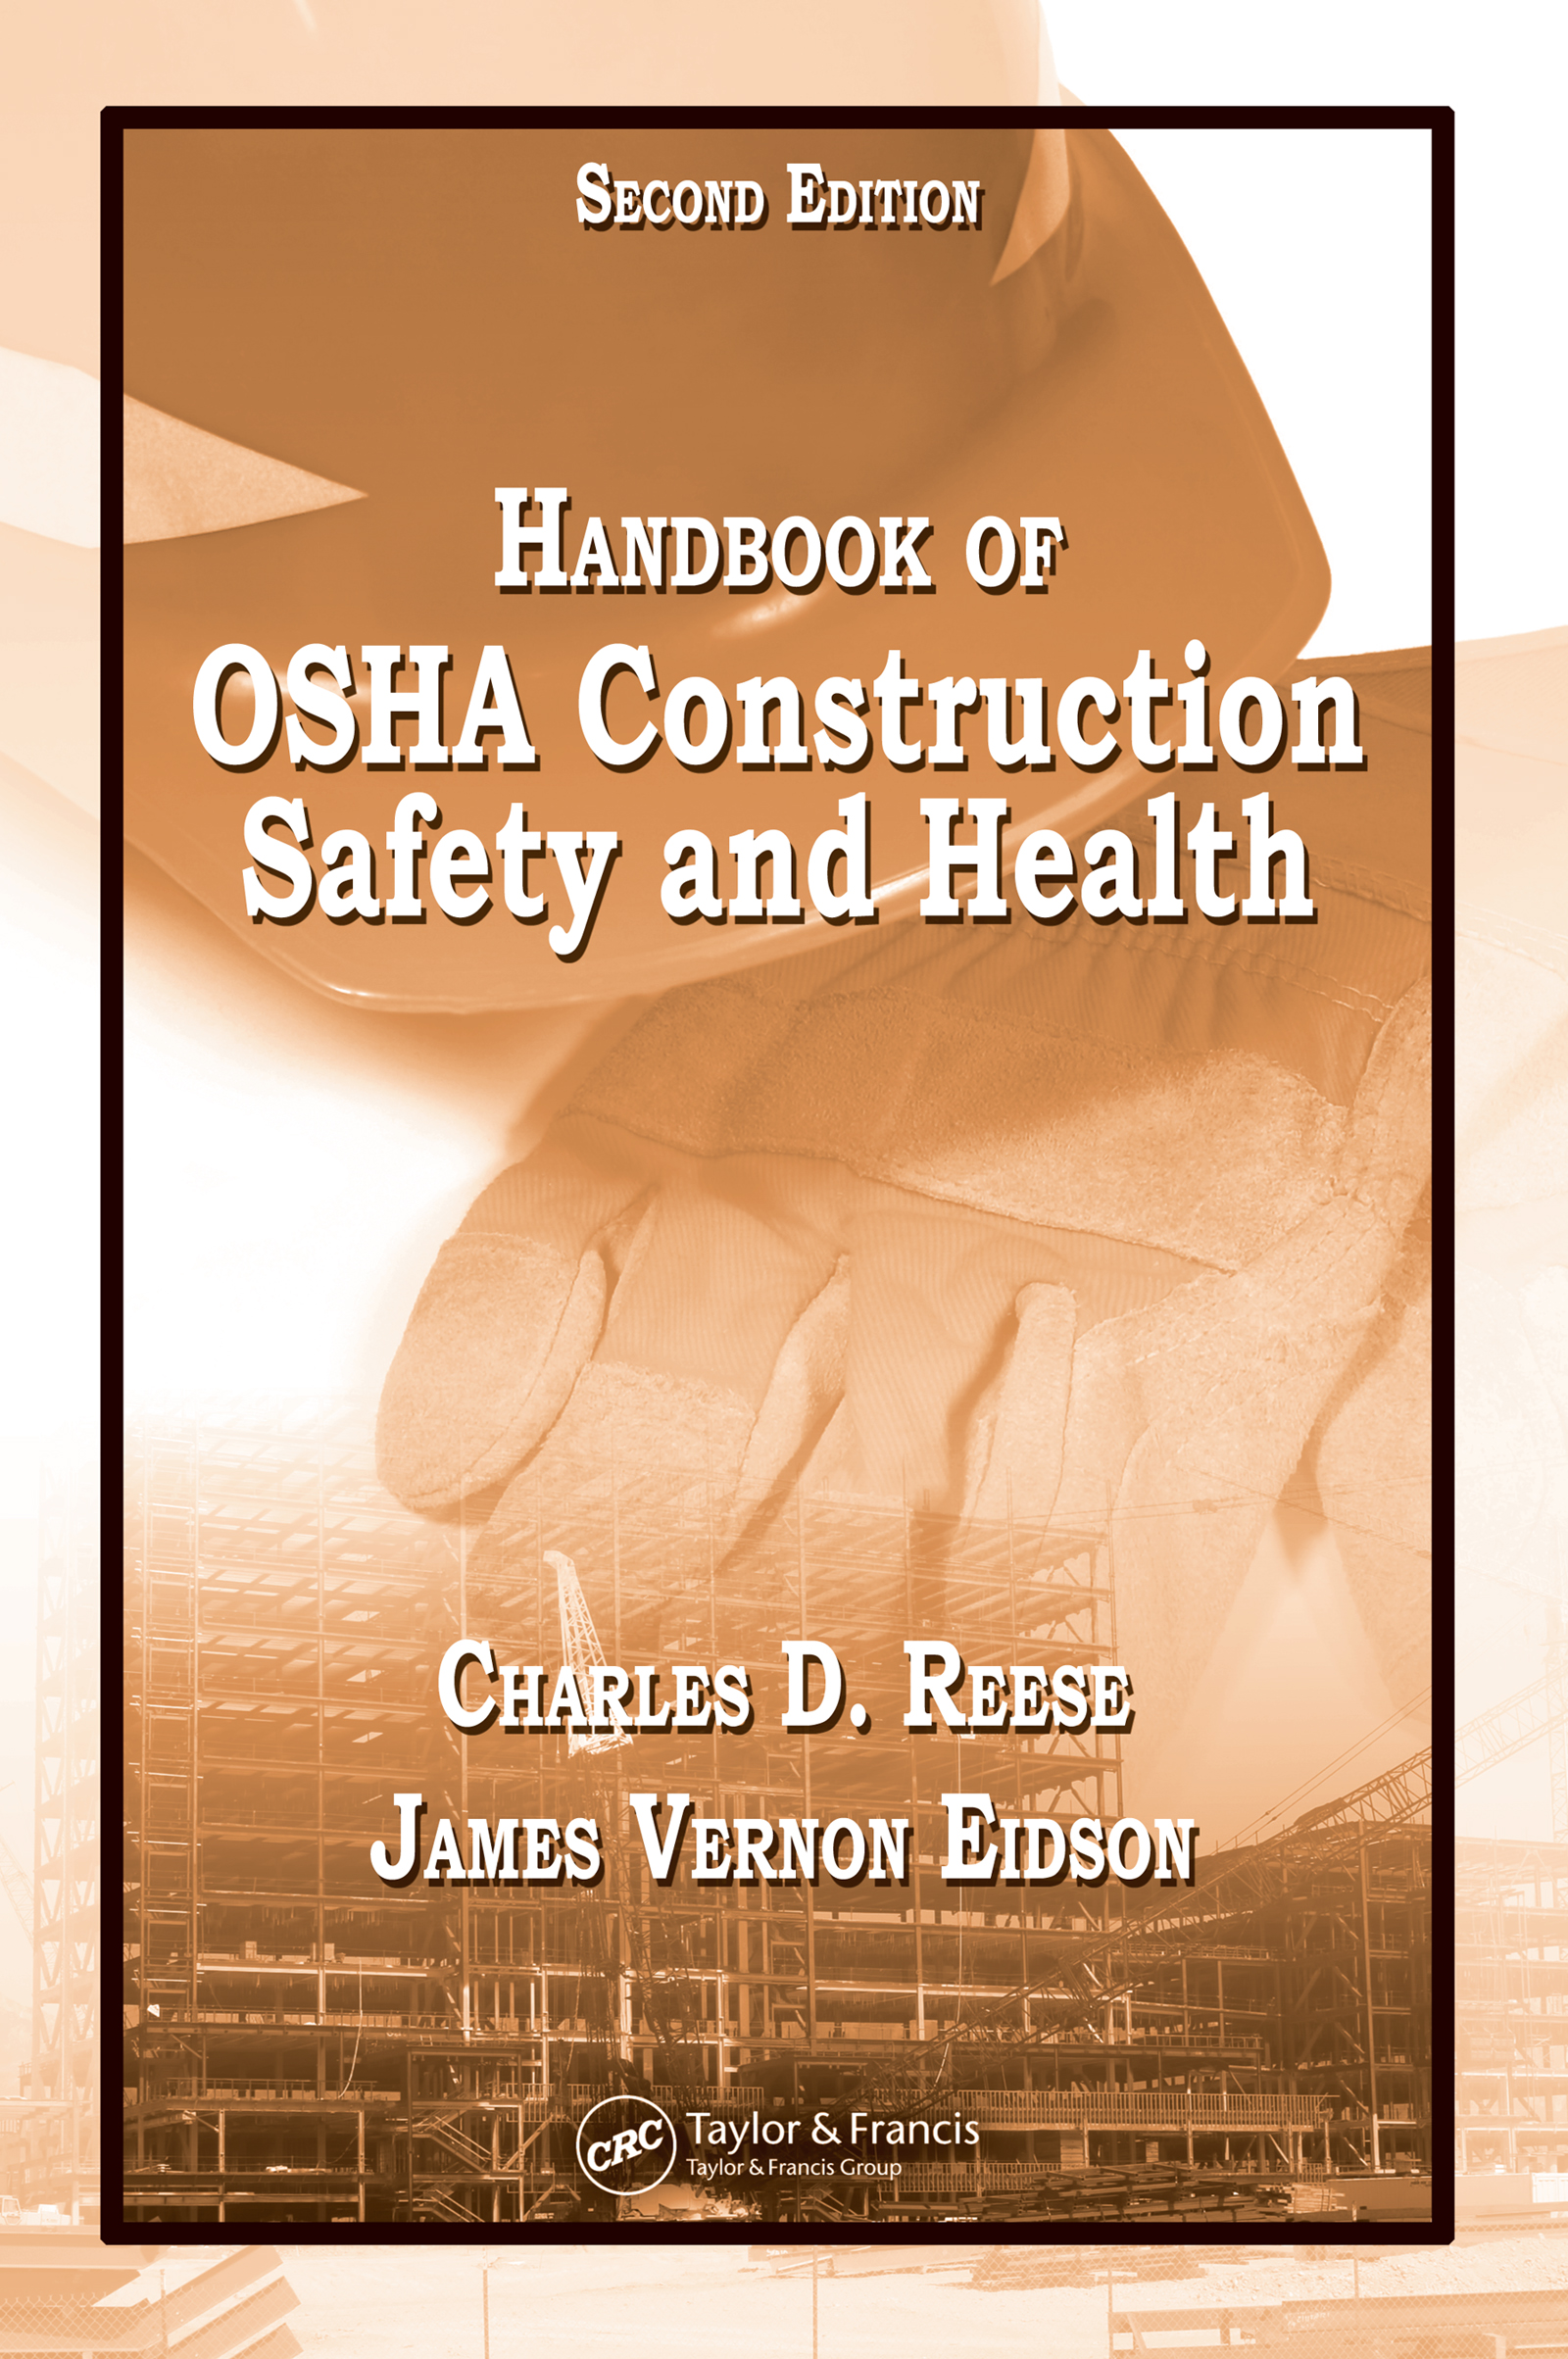 Download Ebook Handbook of OSHA Construction Safety and Health (2nd ed.) by Charles D. Reese Pdf